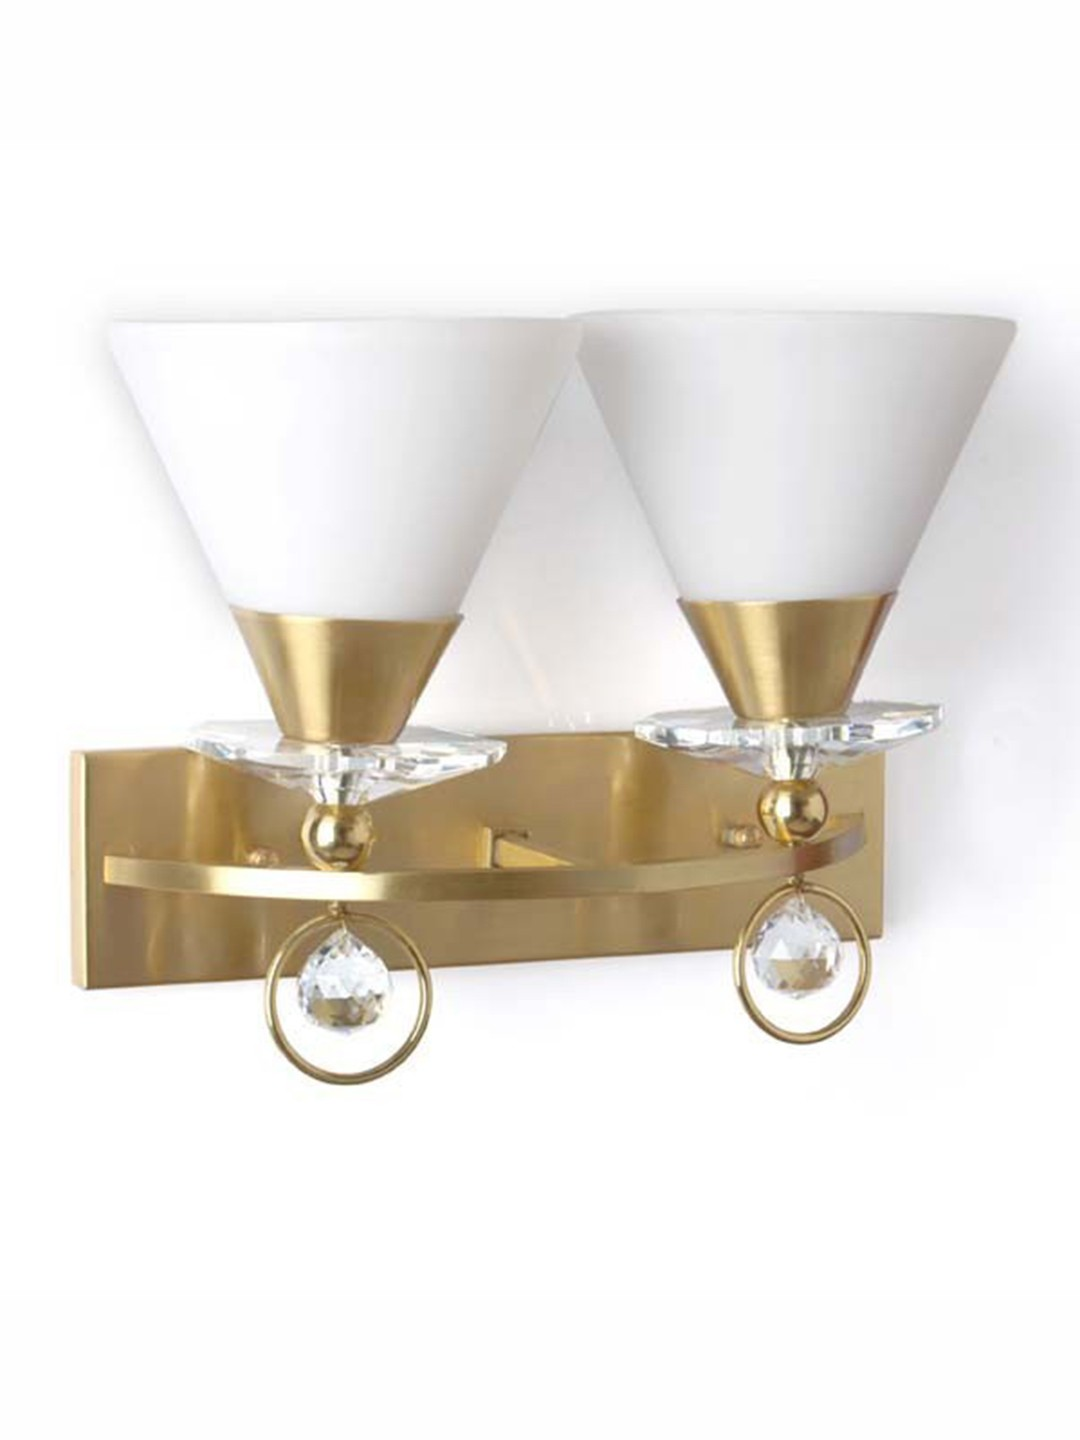 Luxurious Brushed Brass and Crystal Double Wall Light